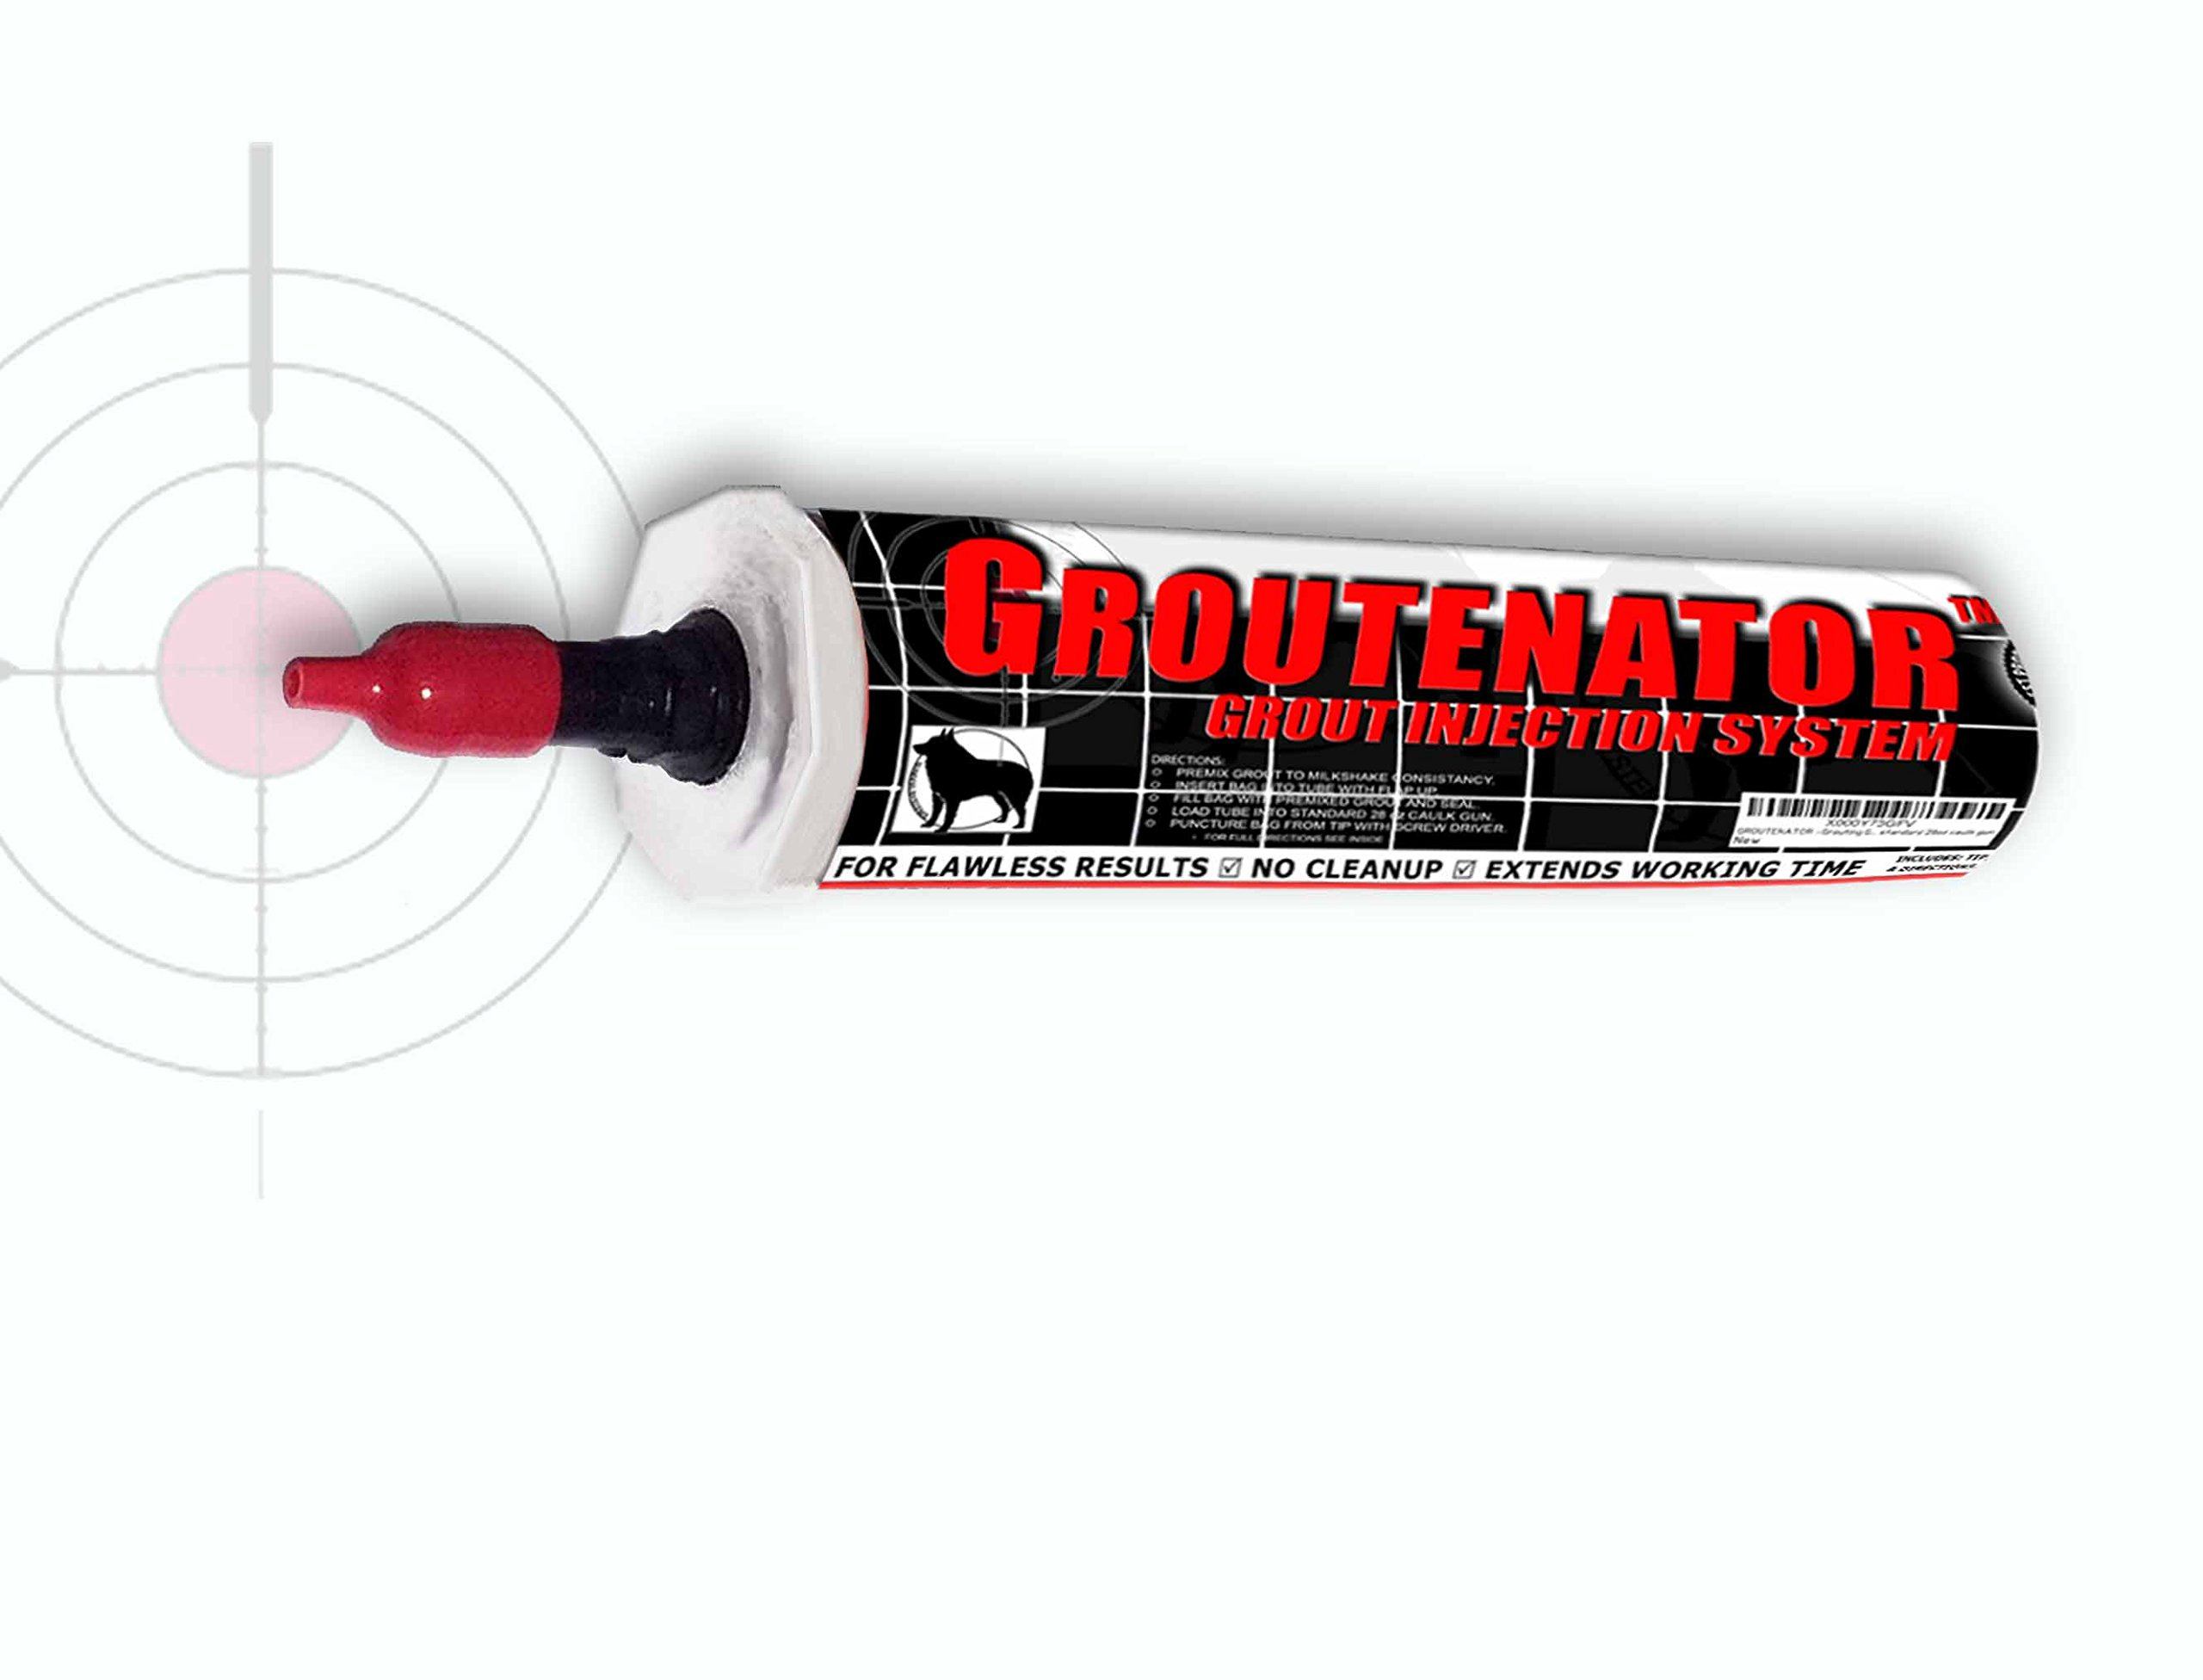 GROUTENATOR JR. 10oz - Refillable Tube, Grout Bag replacement for Grout, Glues and more...